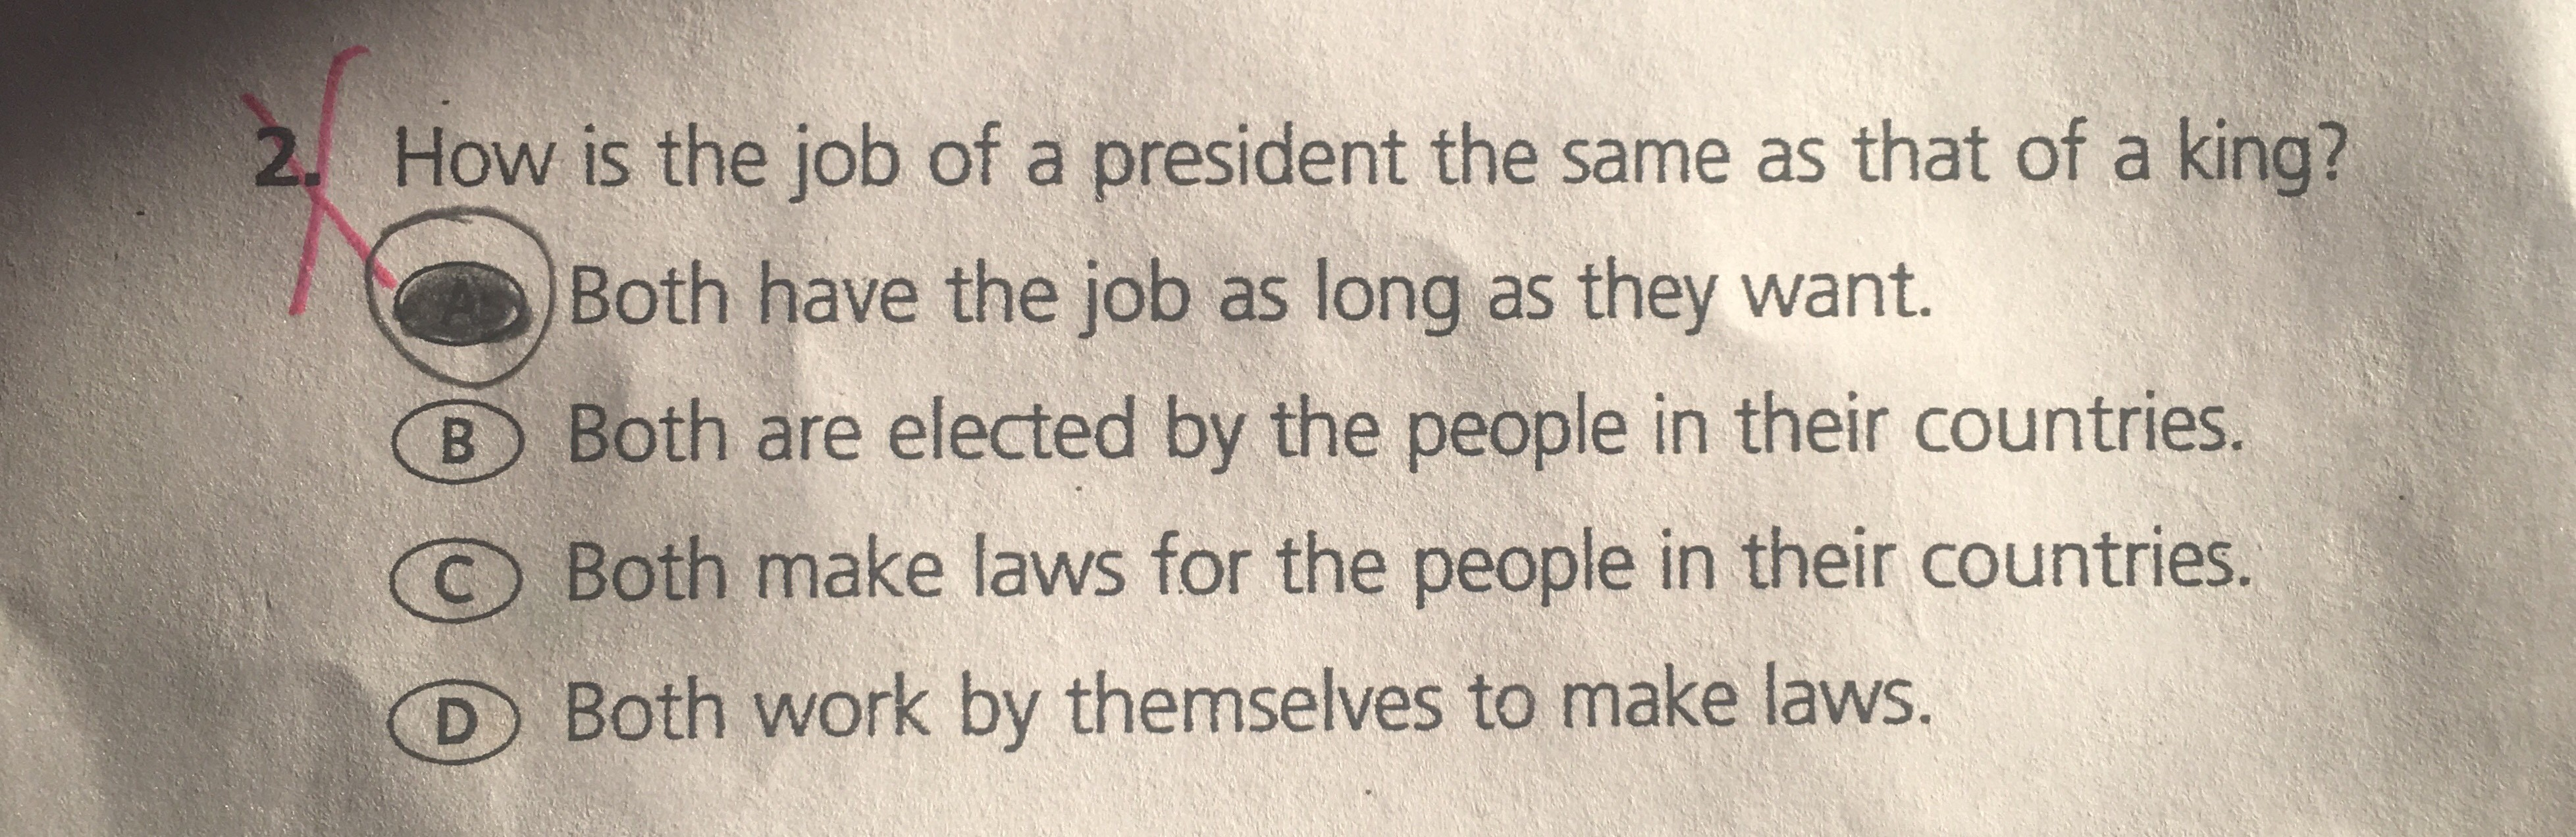 The President Makes Laws According To Scholastic